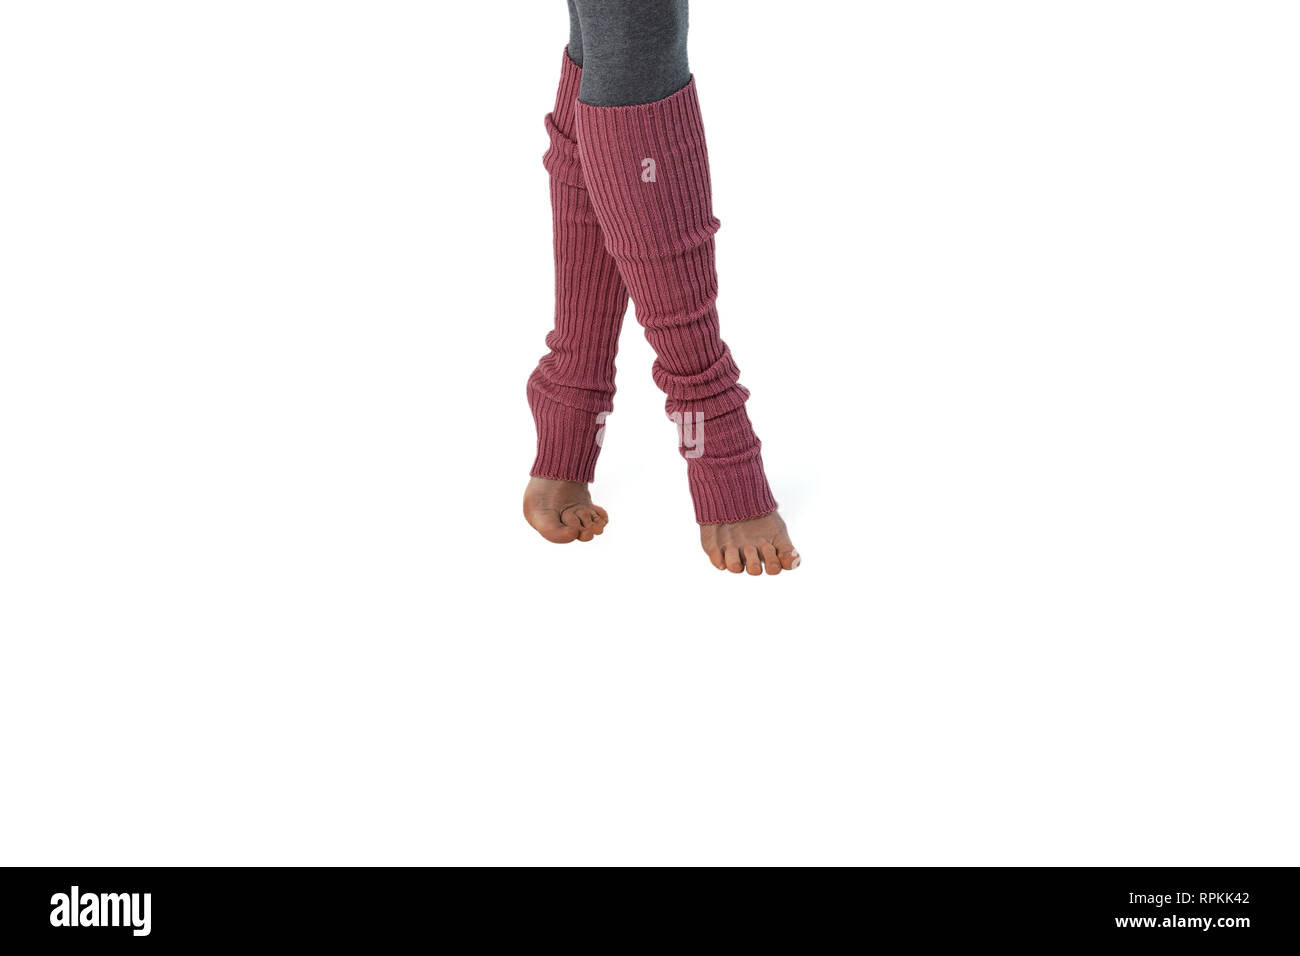 a9faff24292e8 young girl in pink leggings, engaged in pilates standing on fingers. White  background. isolate